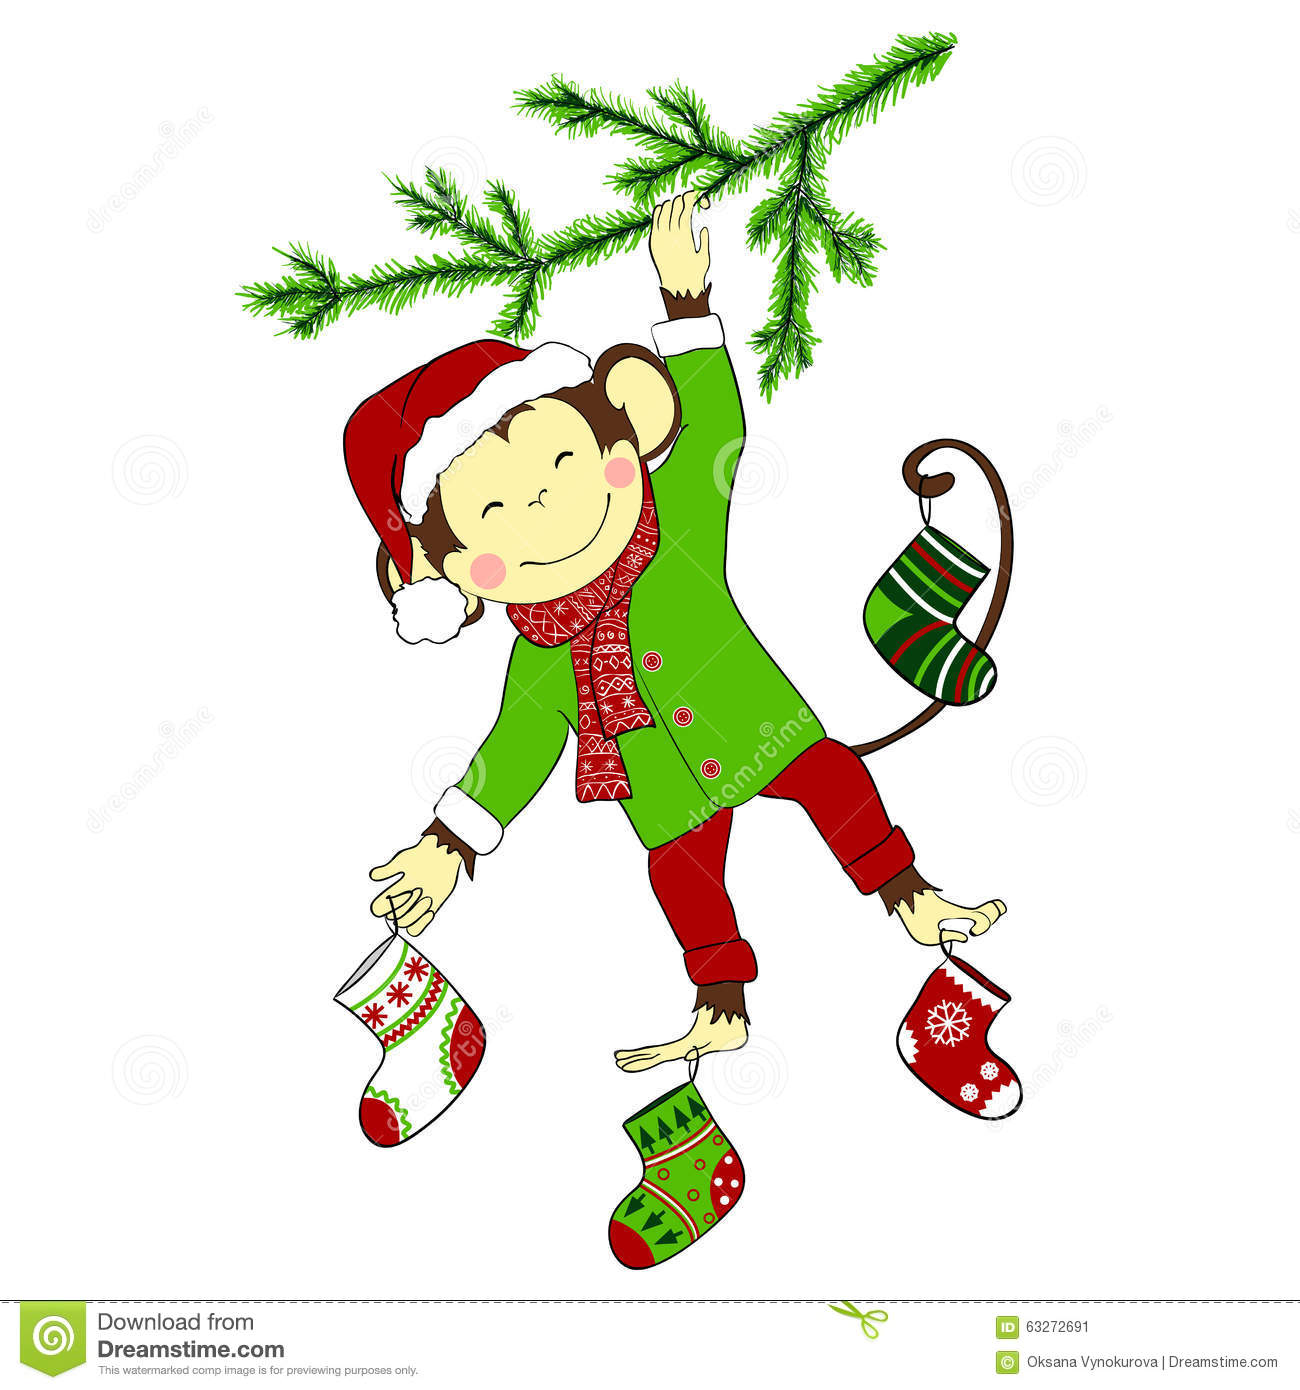 Cartoon Character Design Competition : Christmas monkey hanging on tree and holding